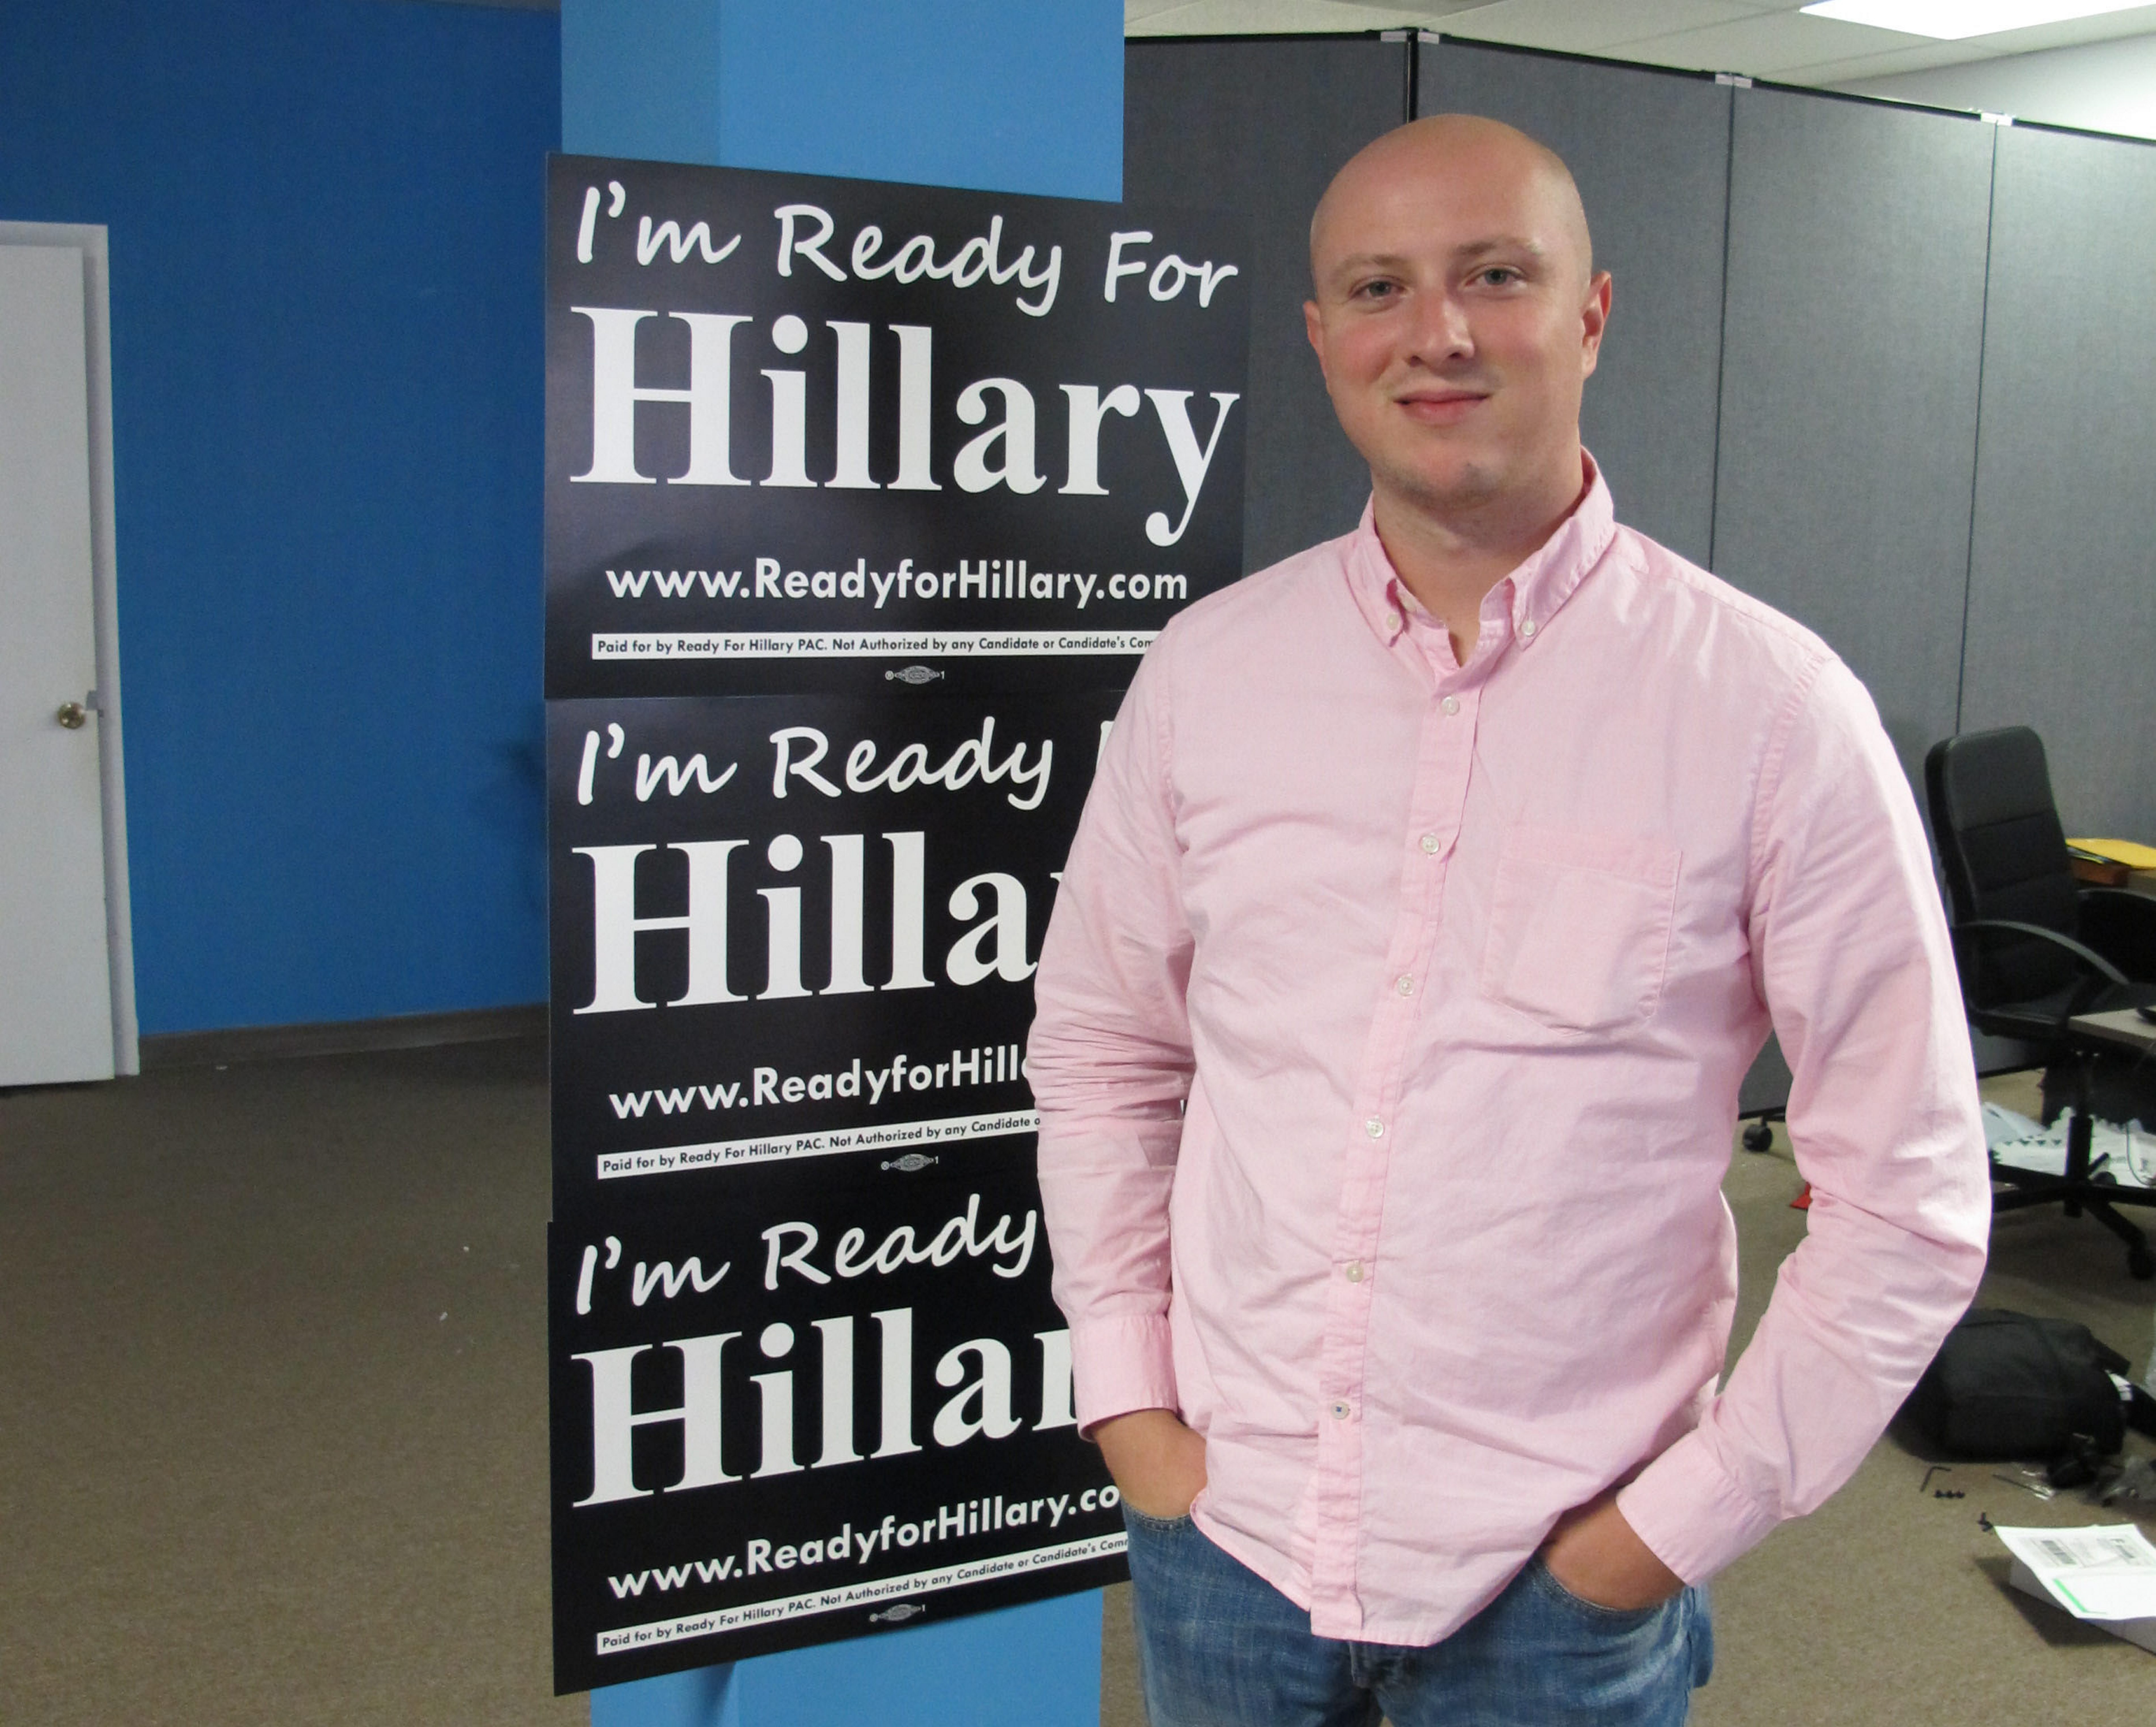 Adam Parkhomenko launched the Ready for Hillary Super PAC in January.